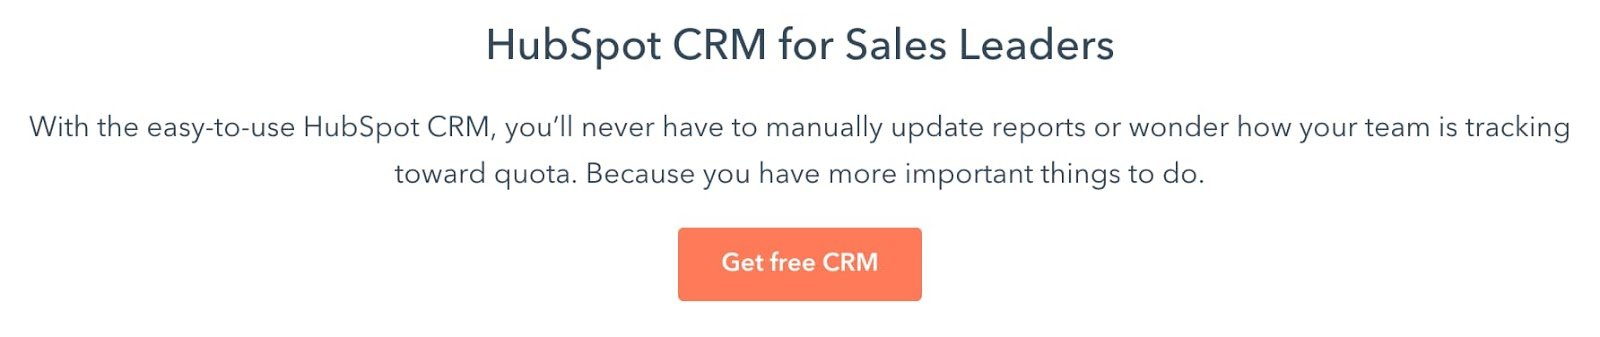 HubSpot sales copy